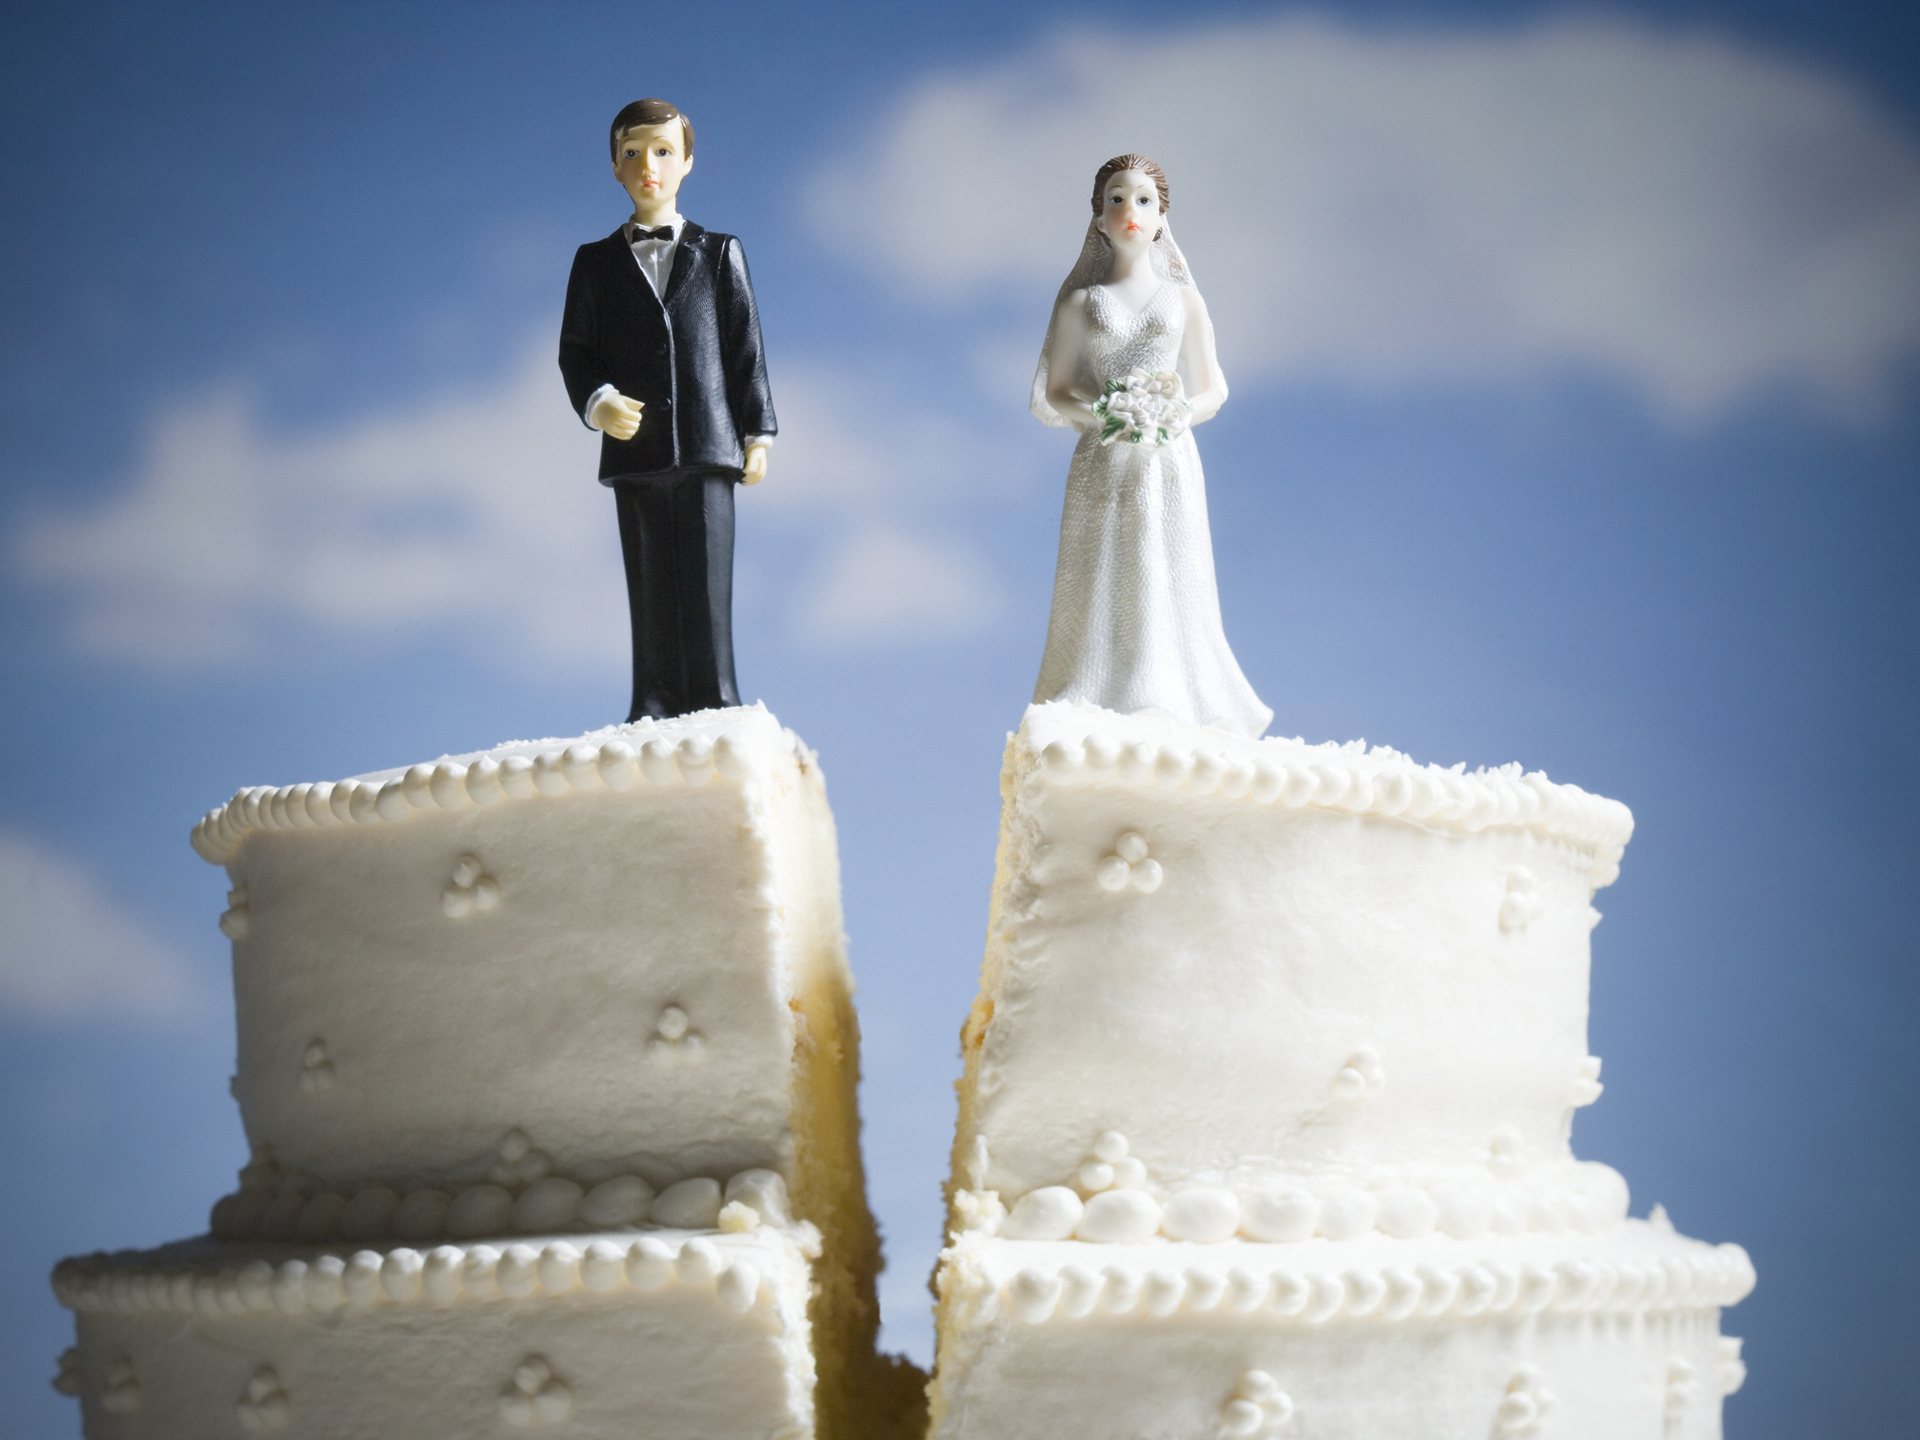 Unsuccessful marriage: Divorcees share why they split within a year of marriage